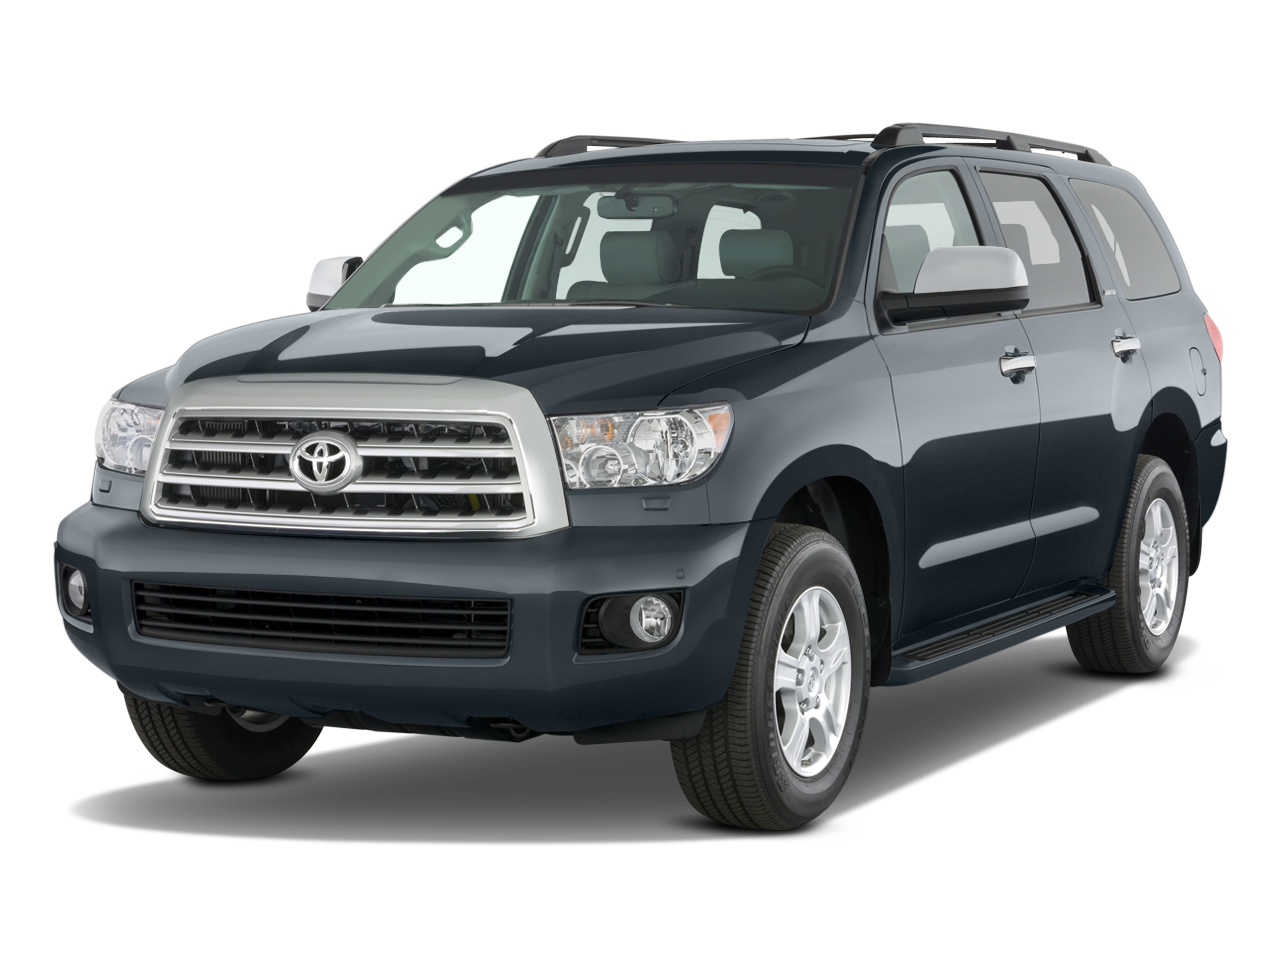 2008 Toyota Sequoia Latest News Features And Reviews